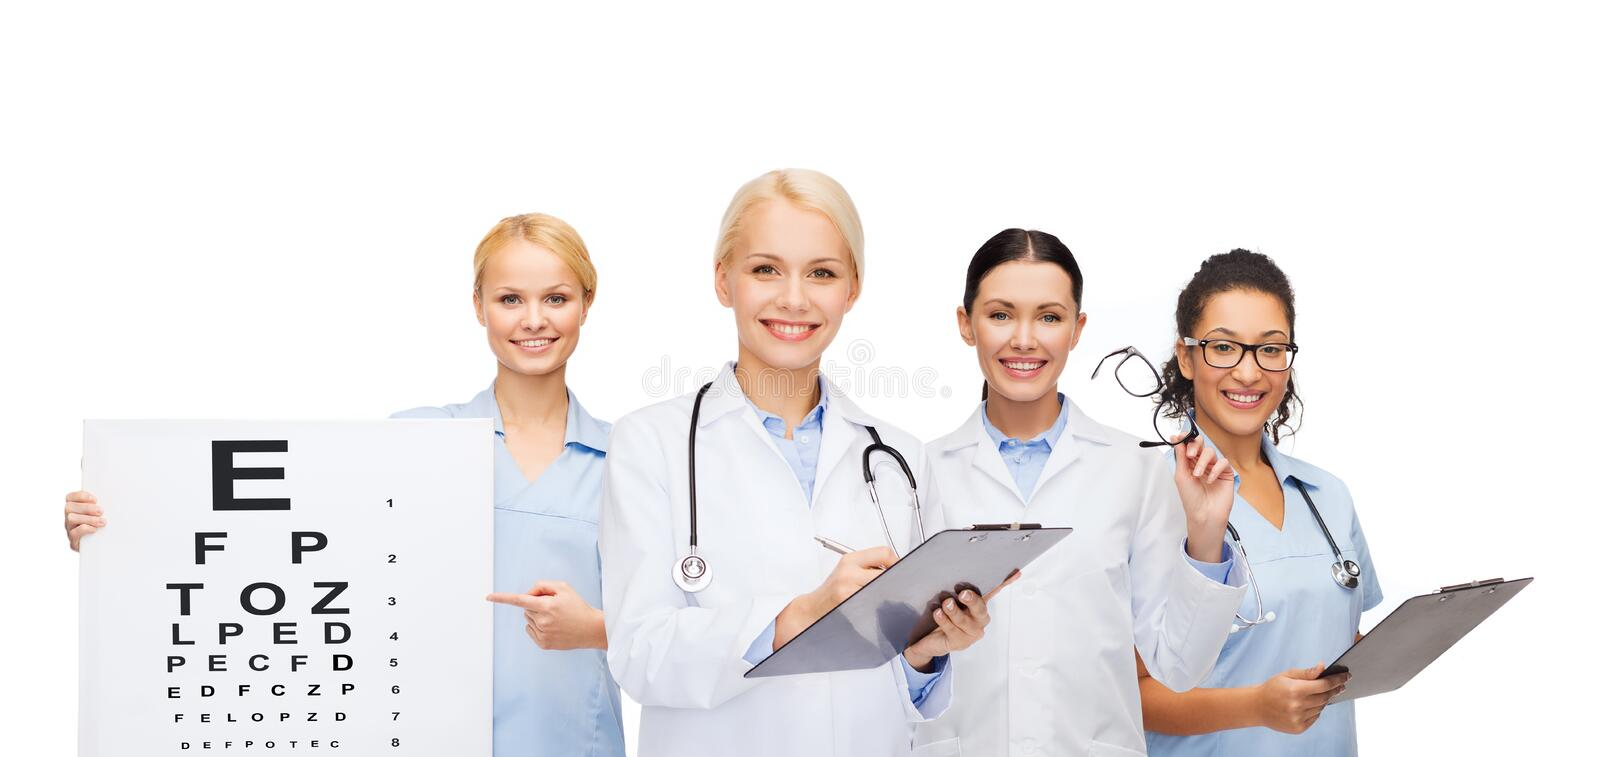 Smiling female eye doctors and nurses. Healthcare, vision and medicine concept - smiling female eye doctors and nurses with eye exam chart, glasses and clipboard stock photos